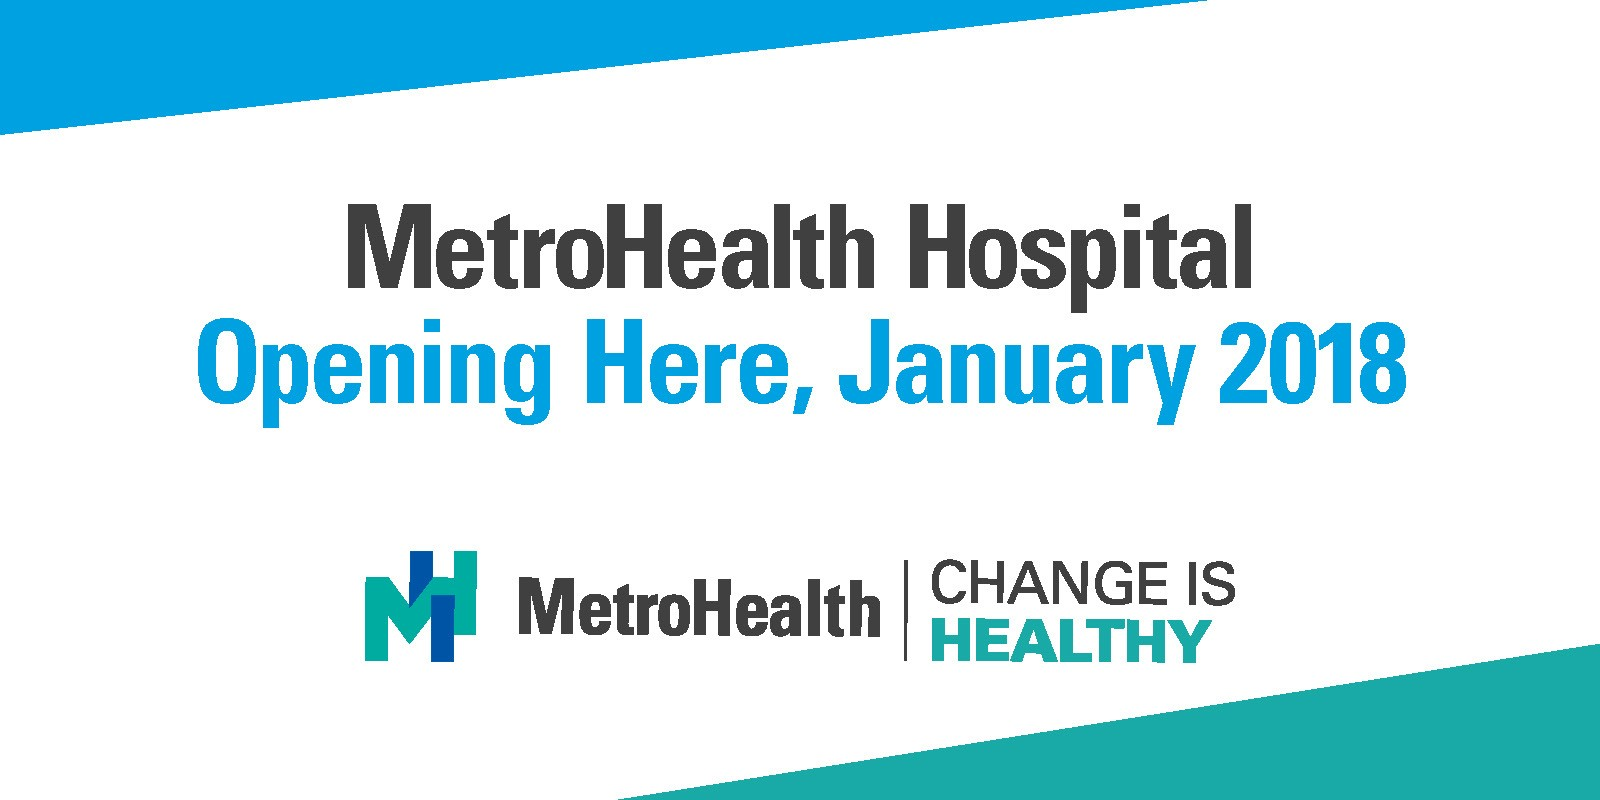 The MetroHealth System Announces Opening of New Hospitals in